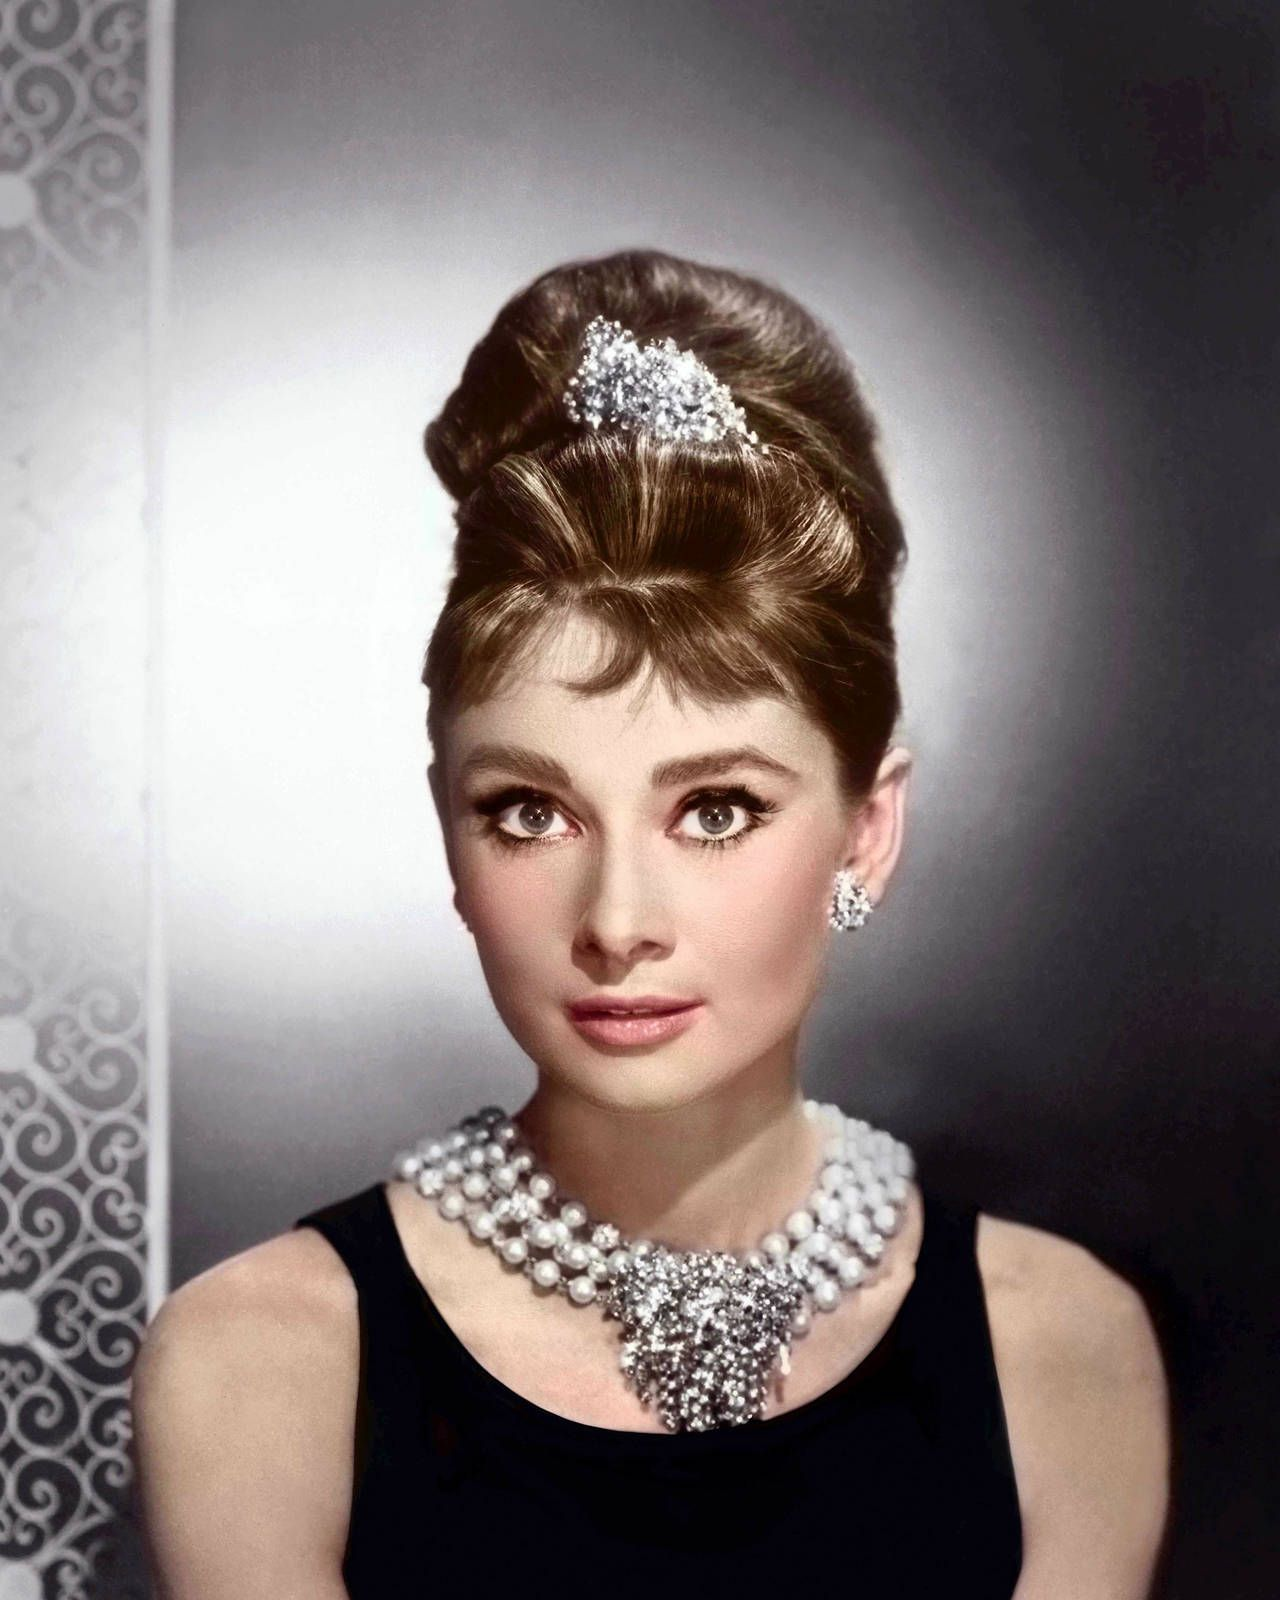 audrey hepburn breakfast at tiffany's necklace - Google Search